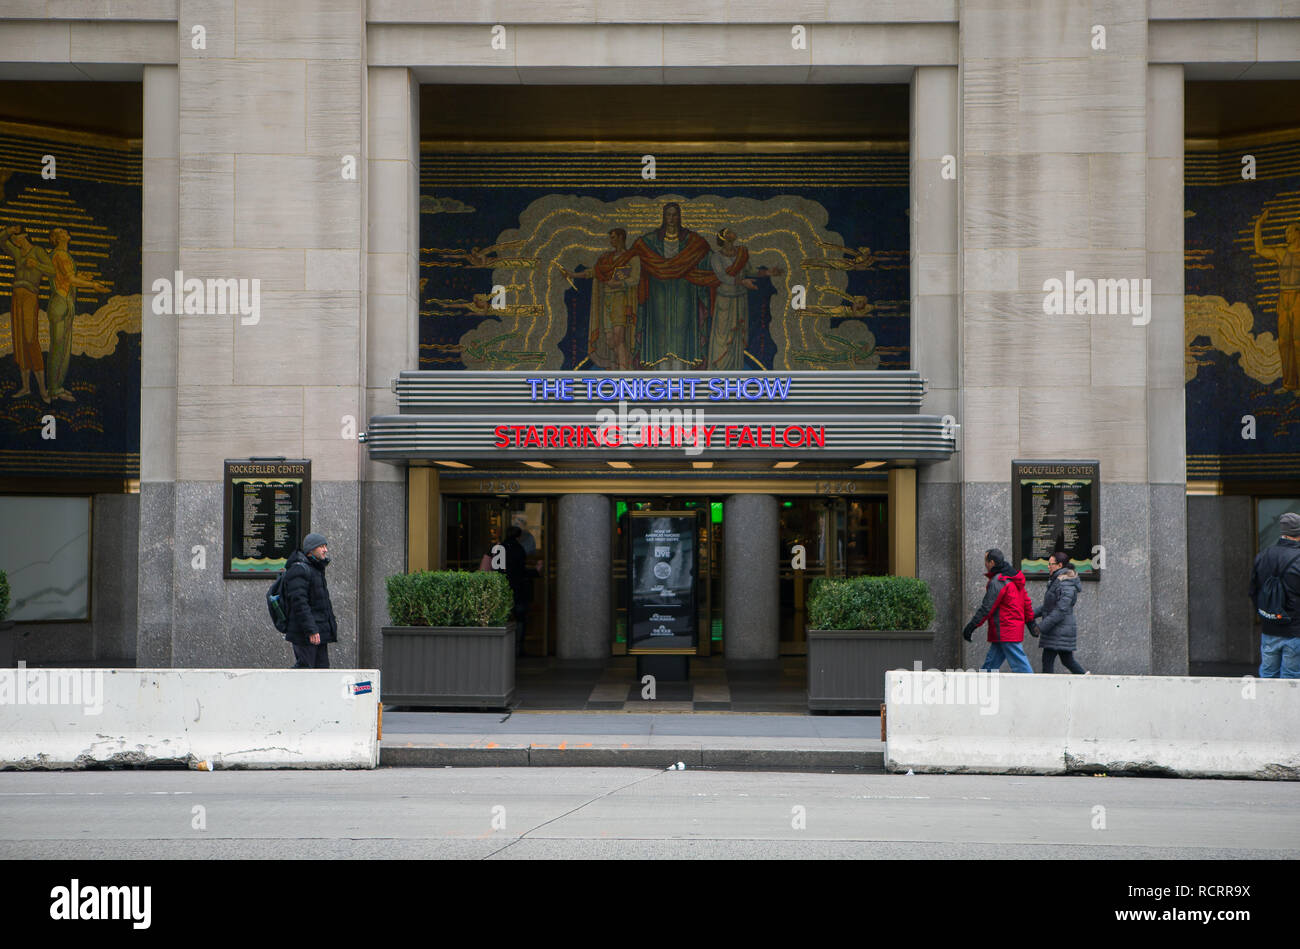 General View GV of The Tonight Show starring Jimmy Fallon studio